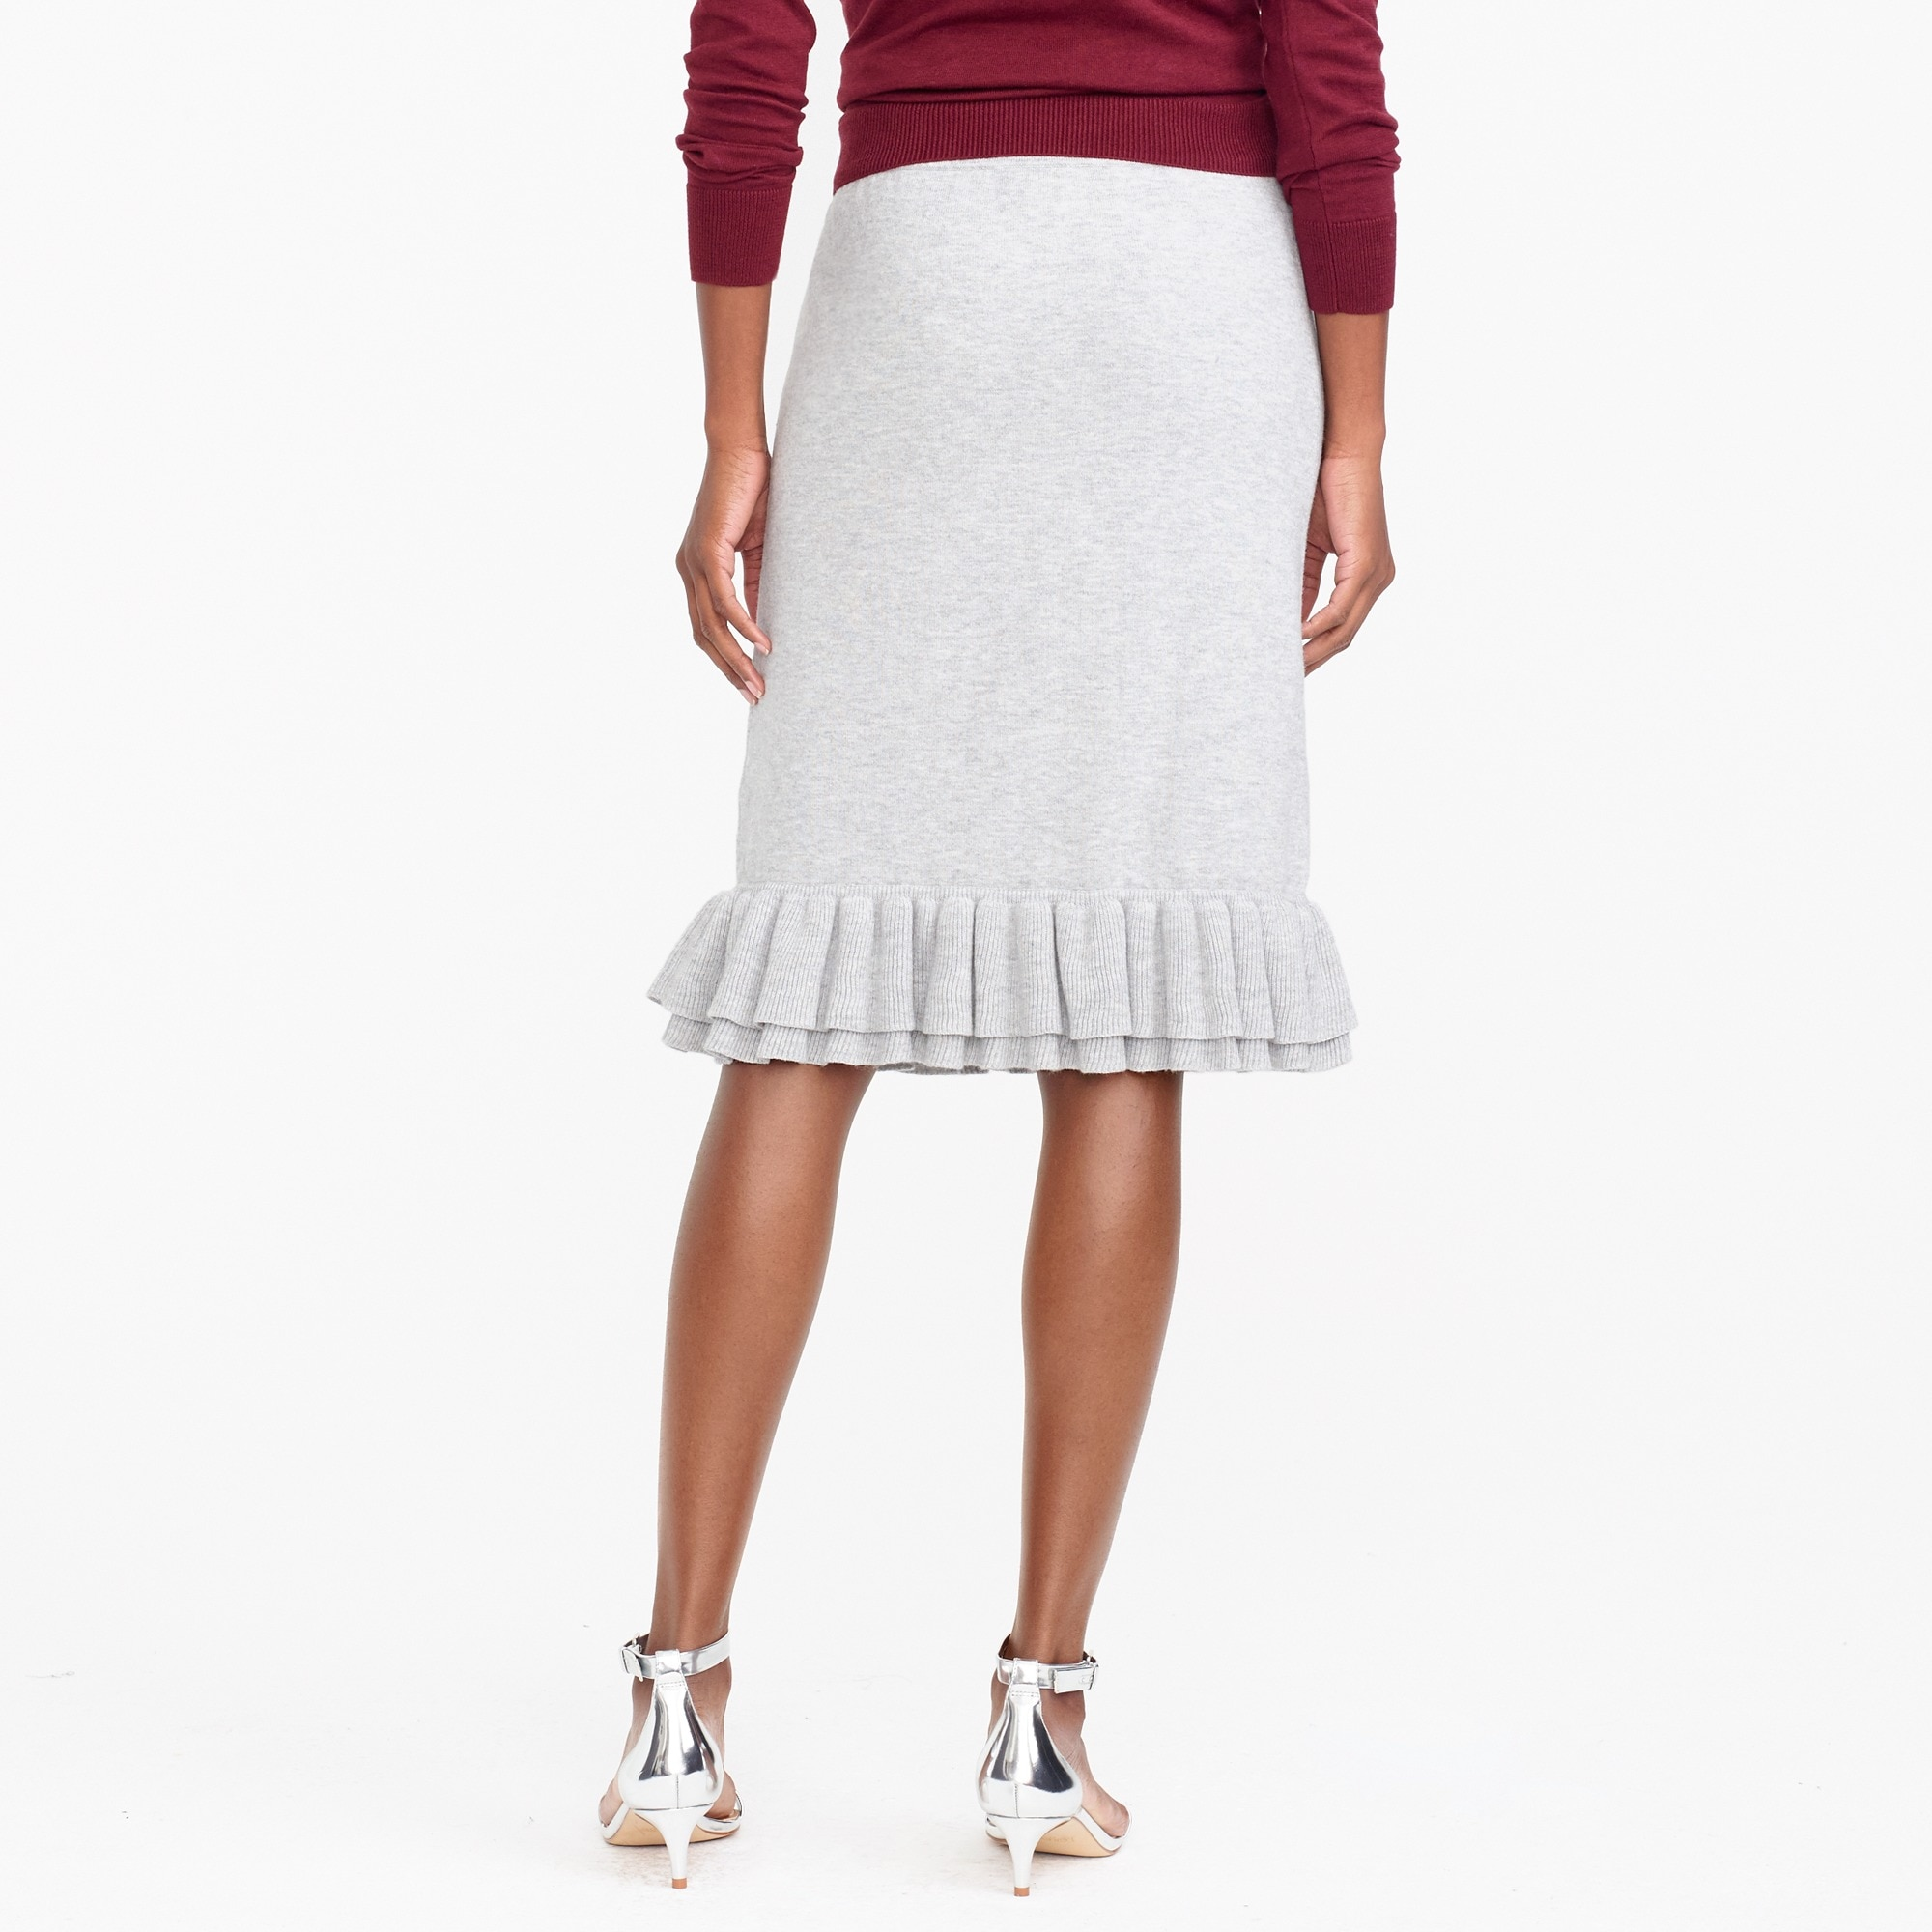 Image 3 for Ruffle sweater skirt